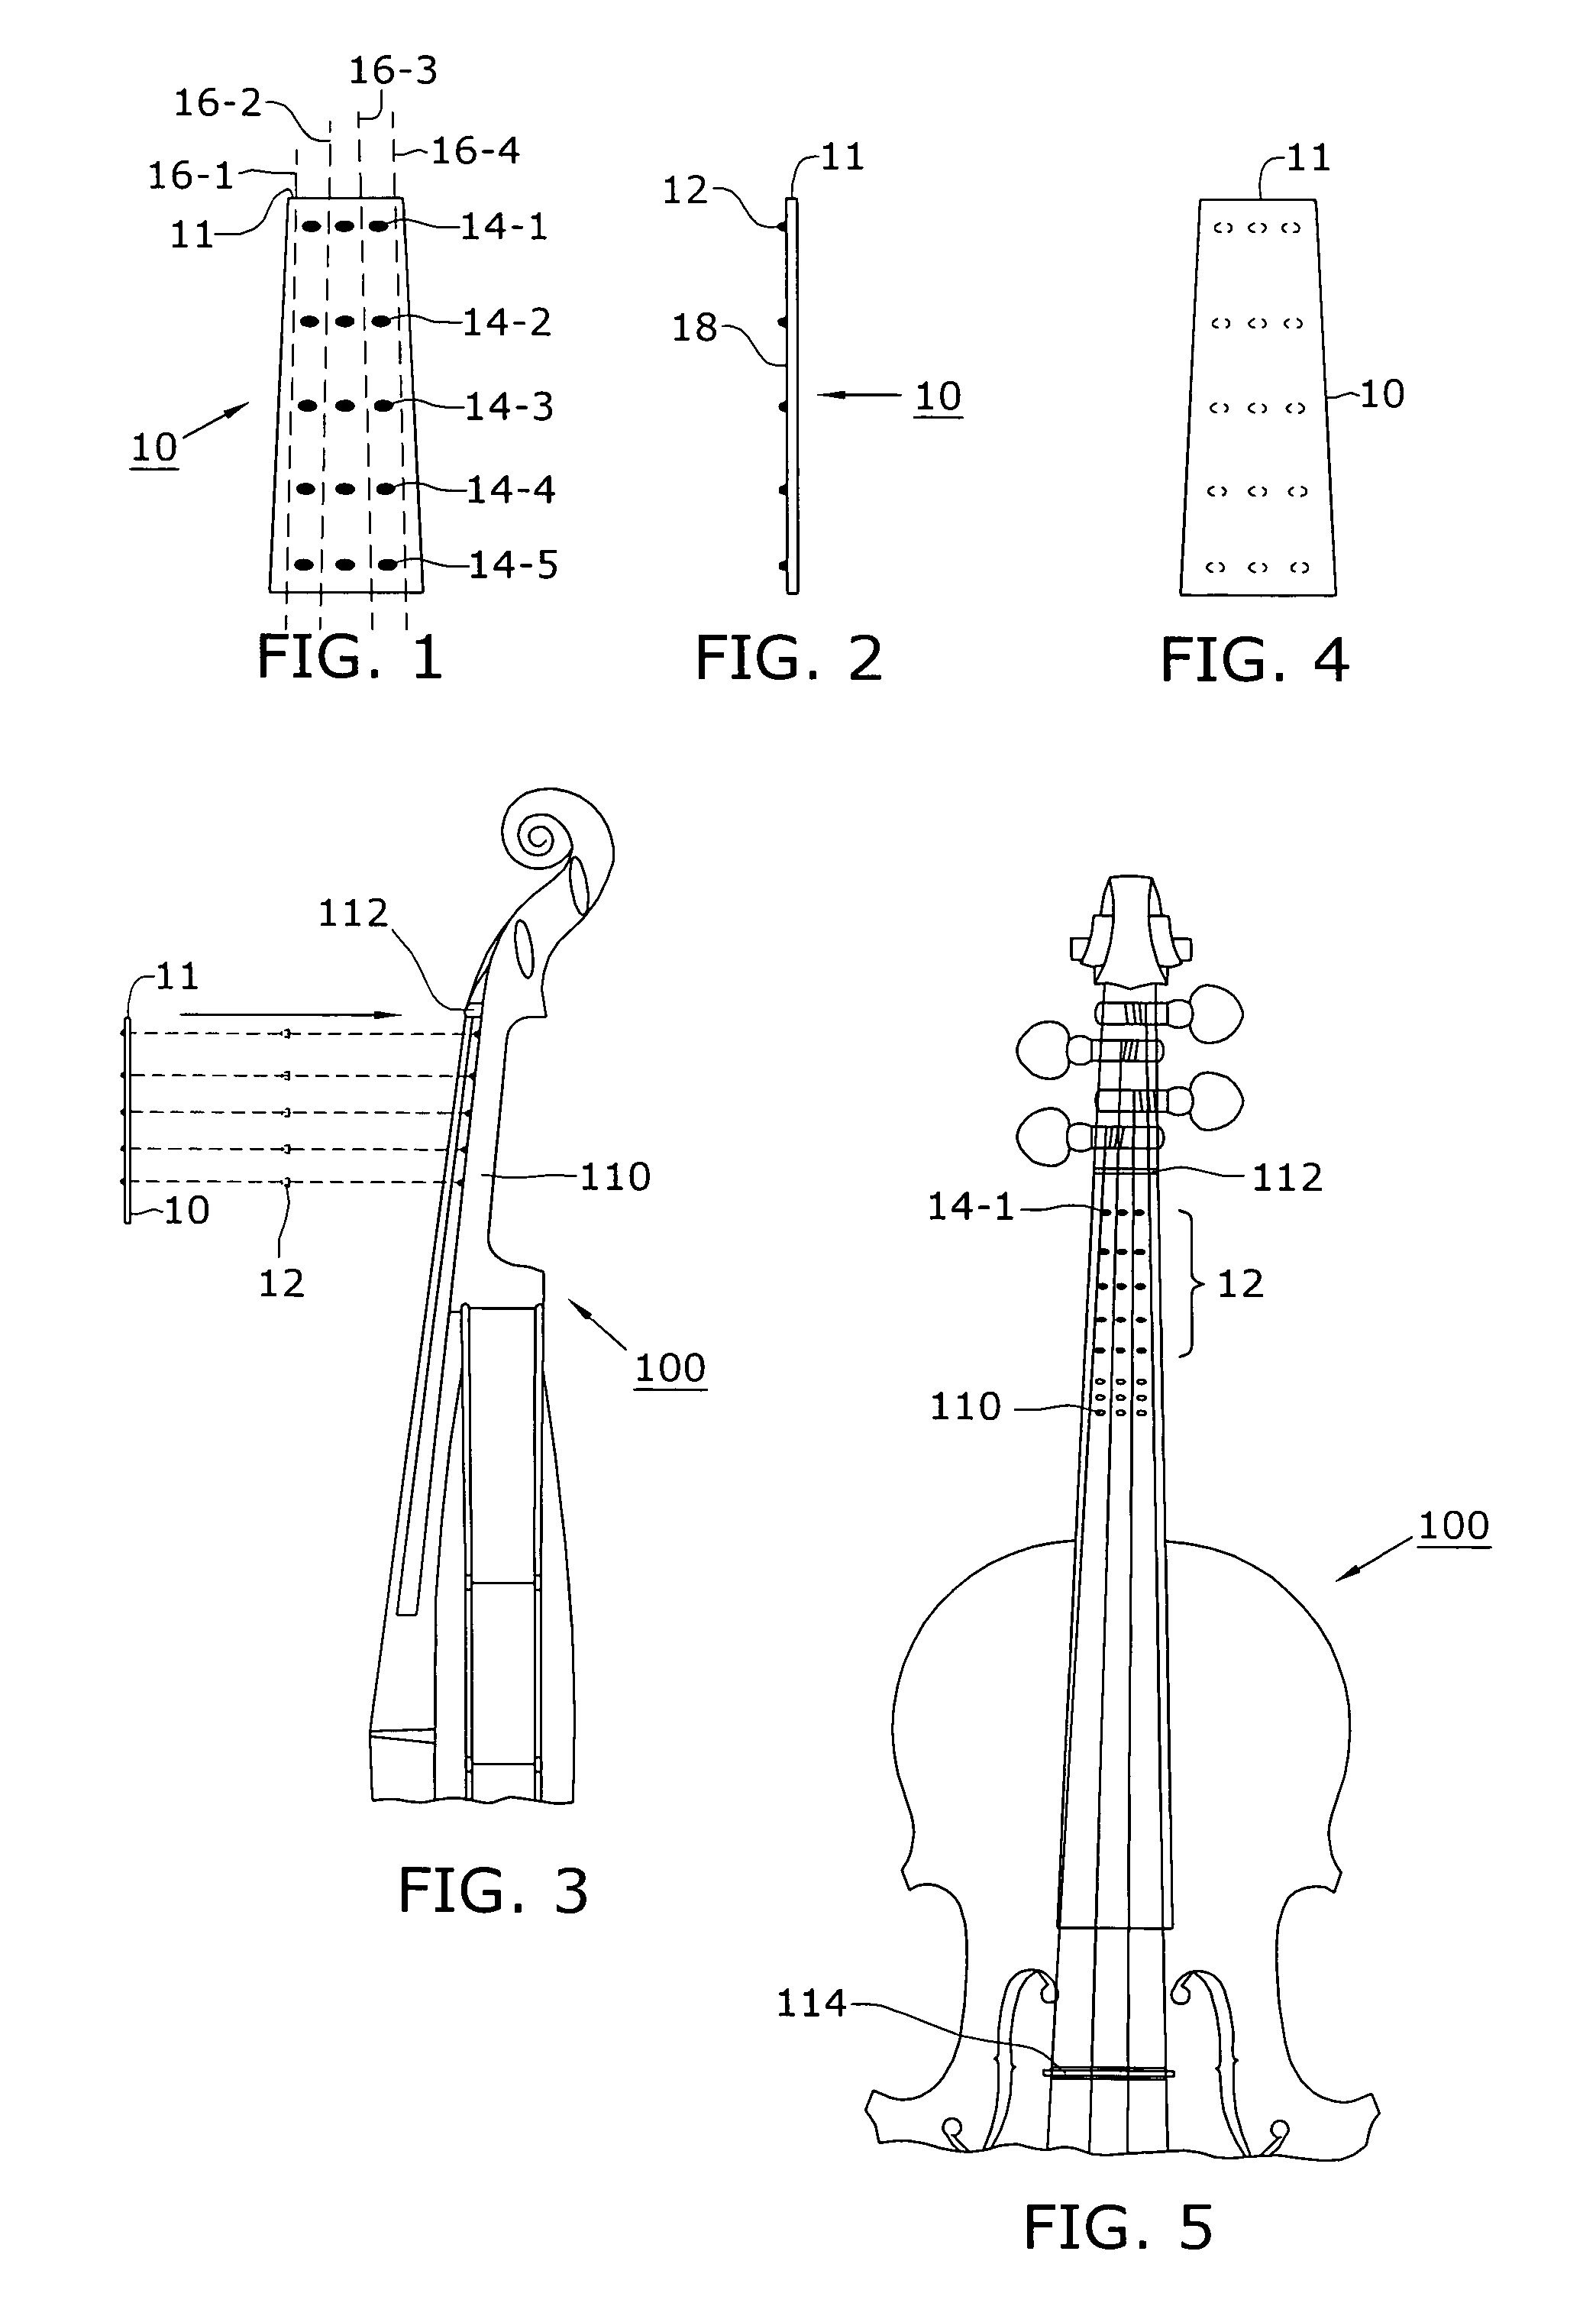 diagram of the parts of a violin and bow